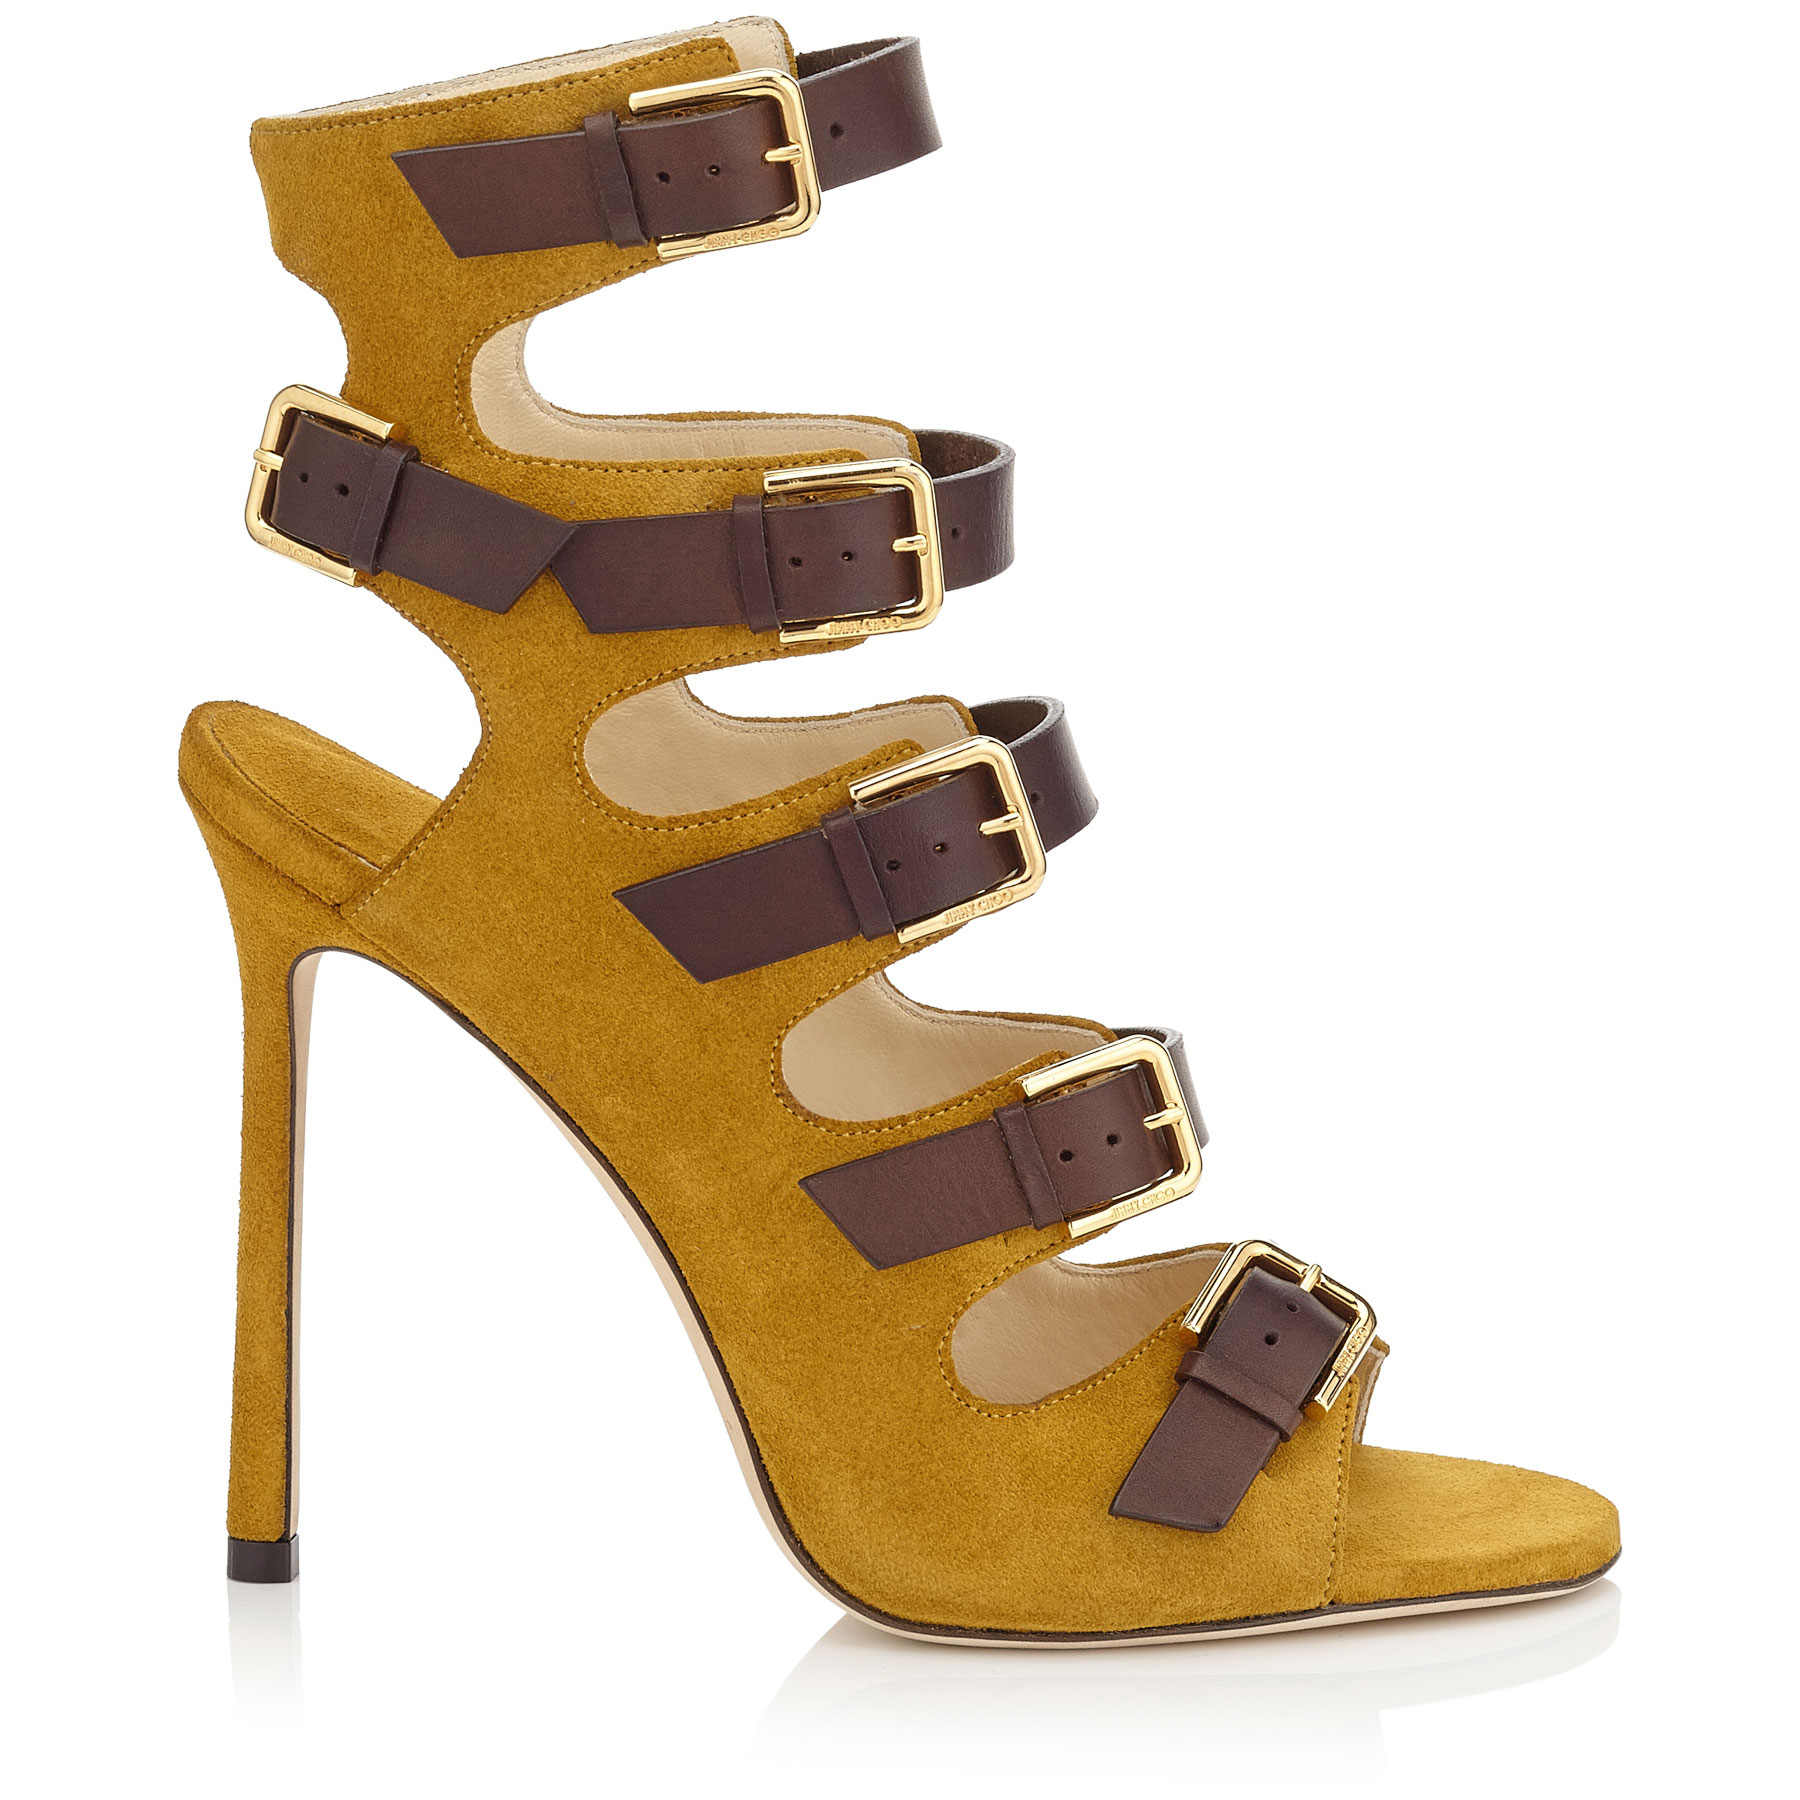 TRICK 110 Amber Suede and Dark Brown Leather Buckled Sandals